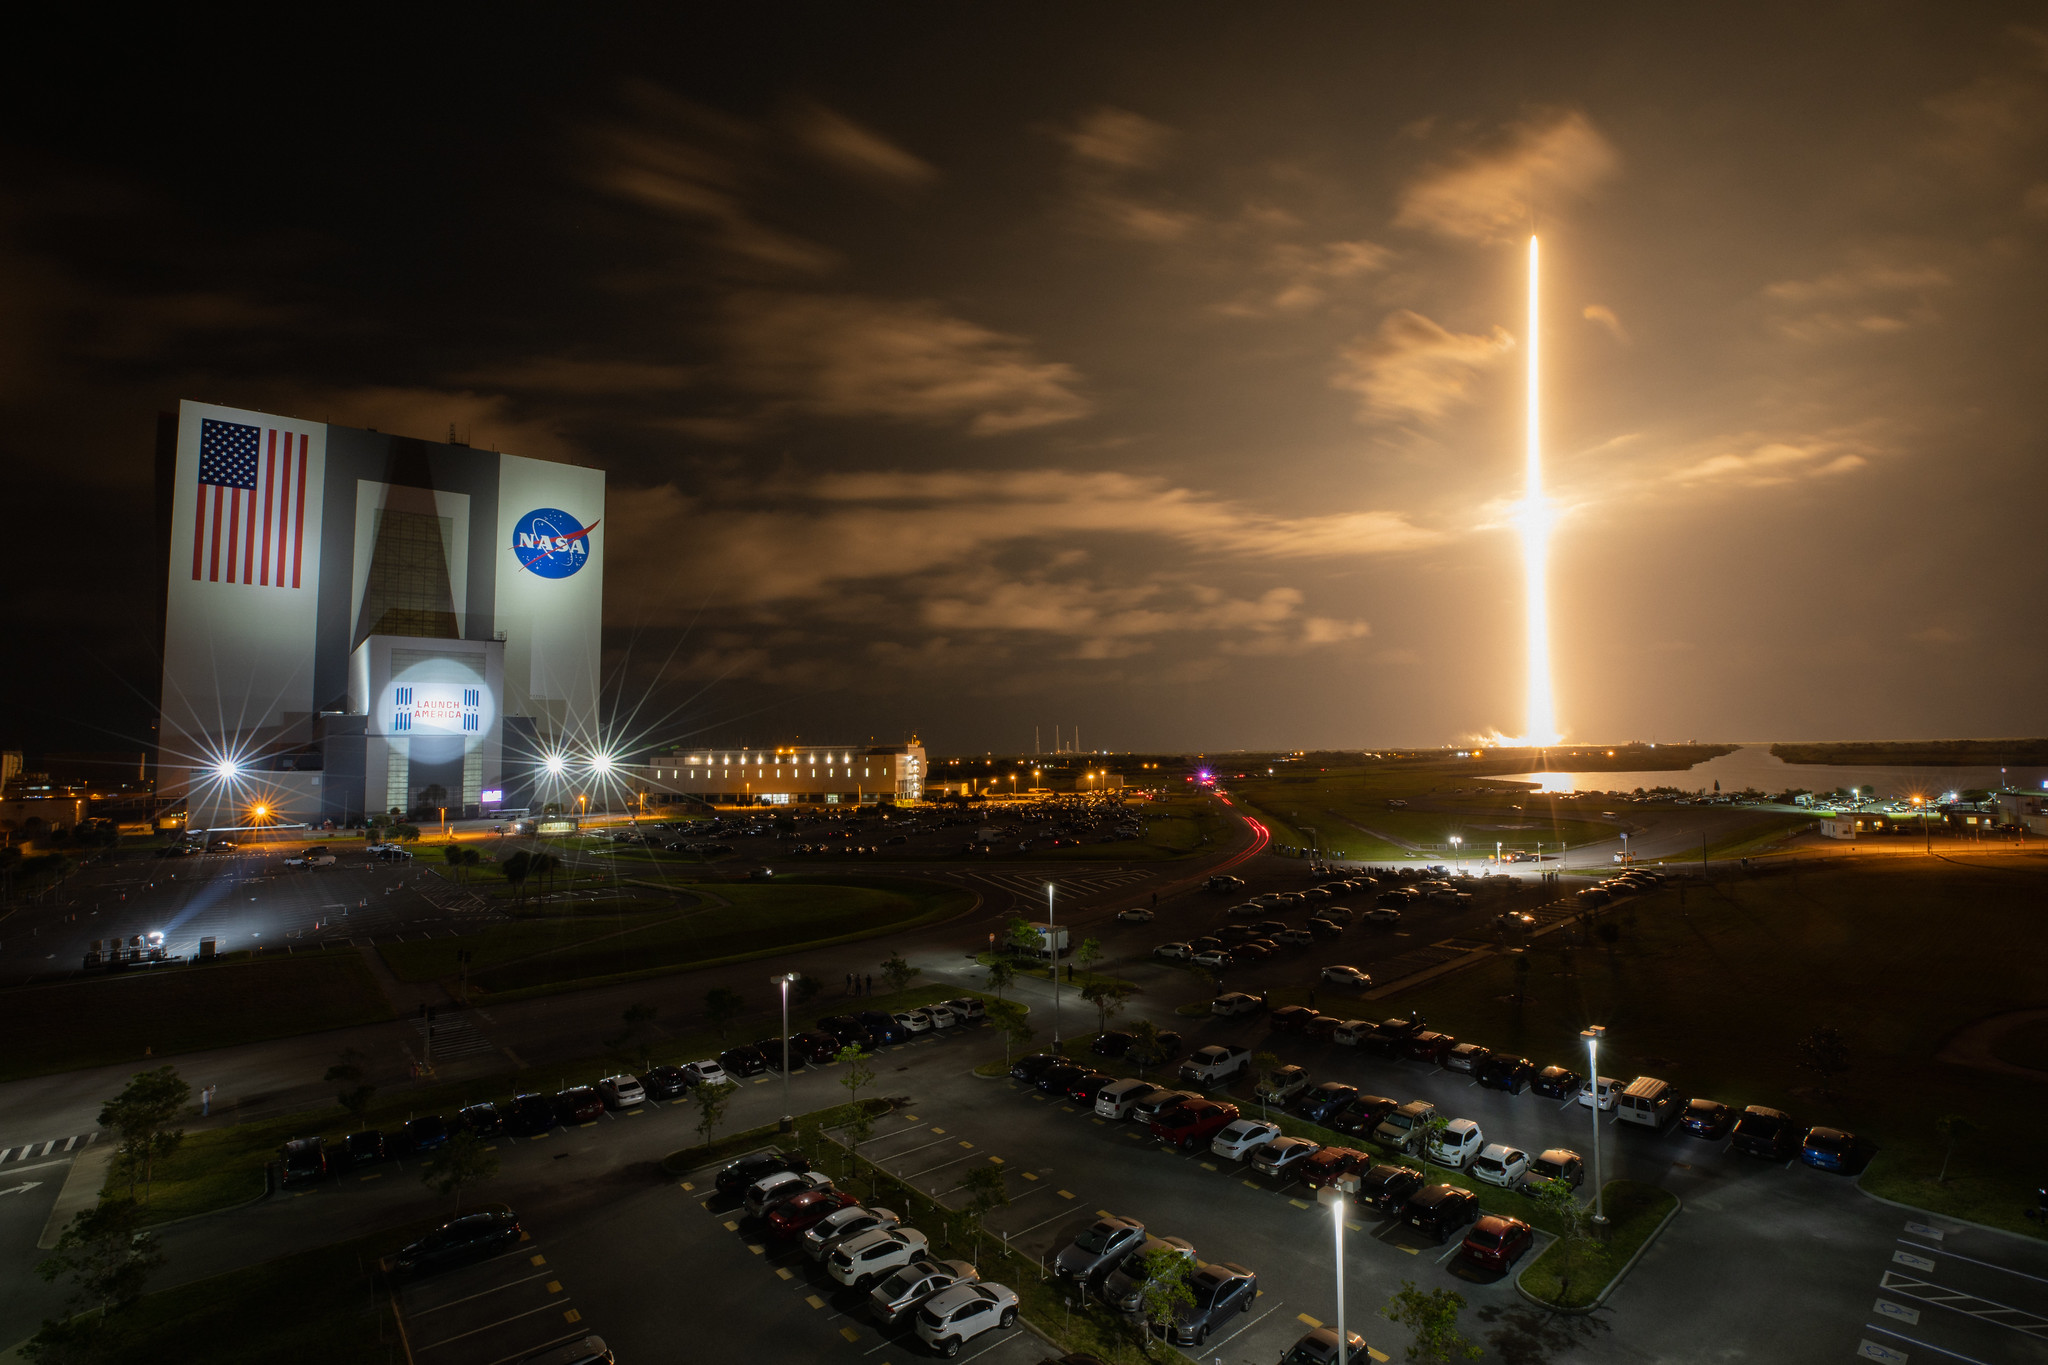 With a view of the iconic Vehicle Assembly Building at left, a SpaceX Falcon 9 rocket soars upward from Launch Complex 39A at NASA's Kennedy Space Center in Florida on April 23, 2021, for NASA's SpaceX Crew-2 mission.